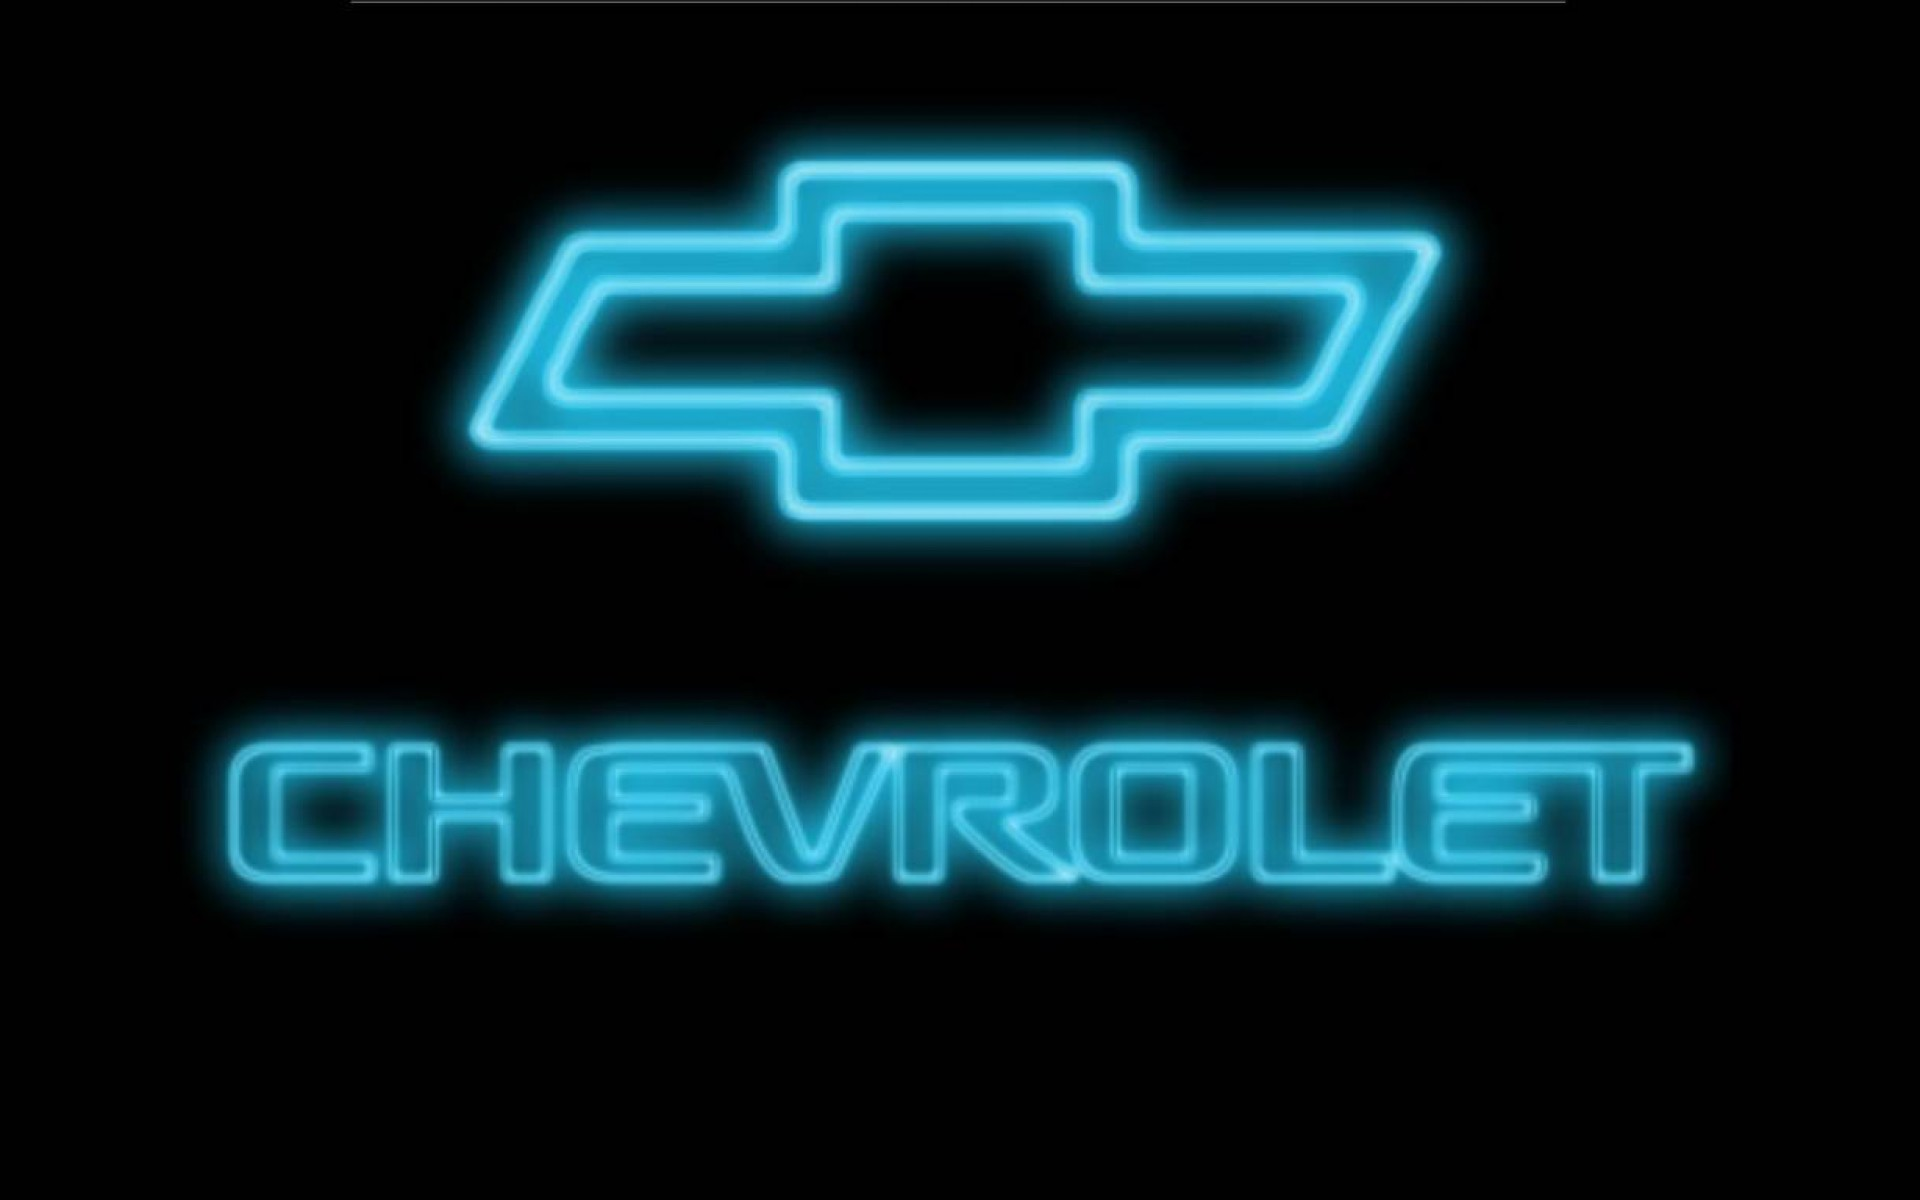 Chevy Logo iPhone Wallpaper (66+ images)